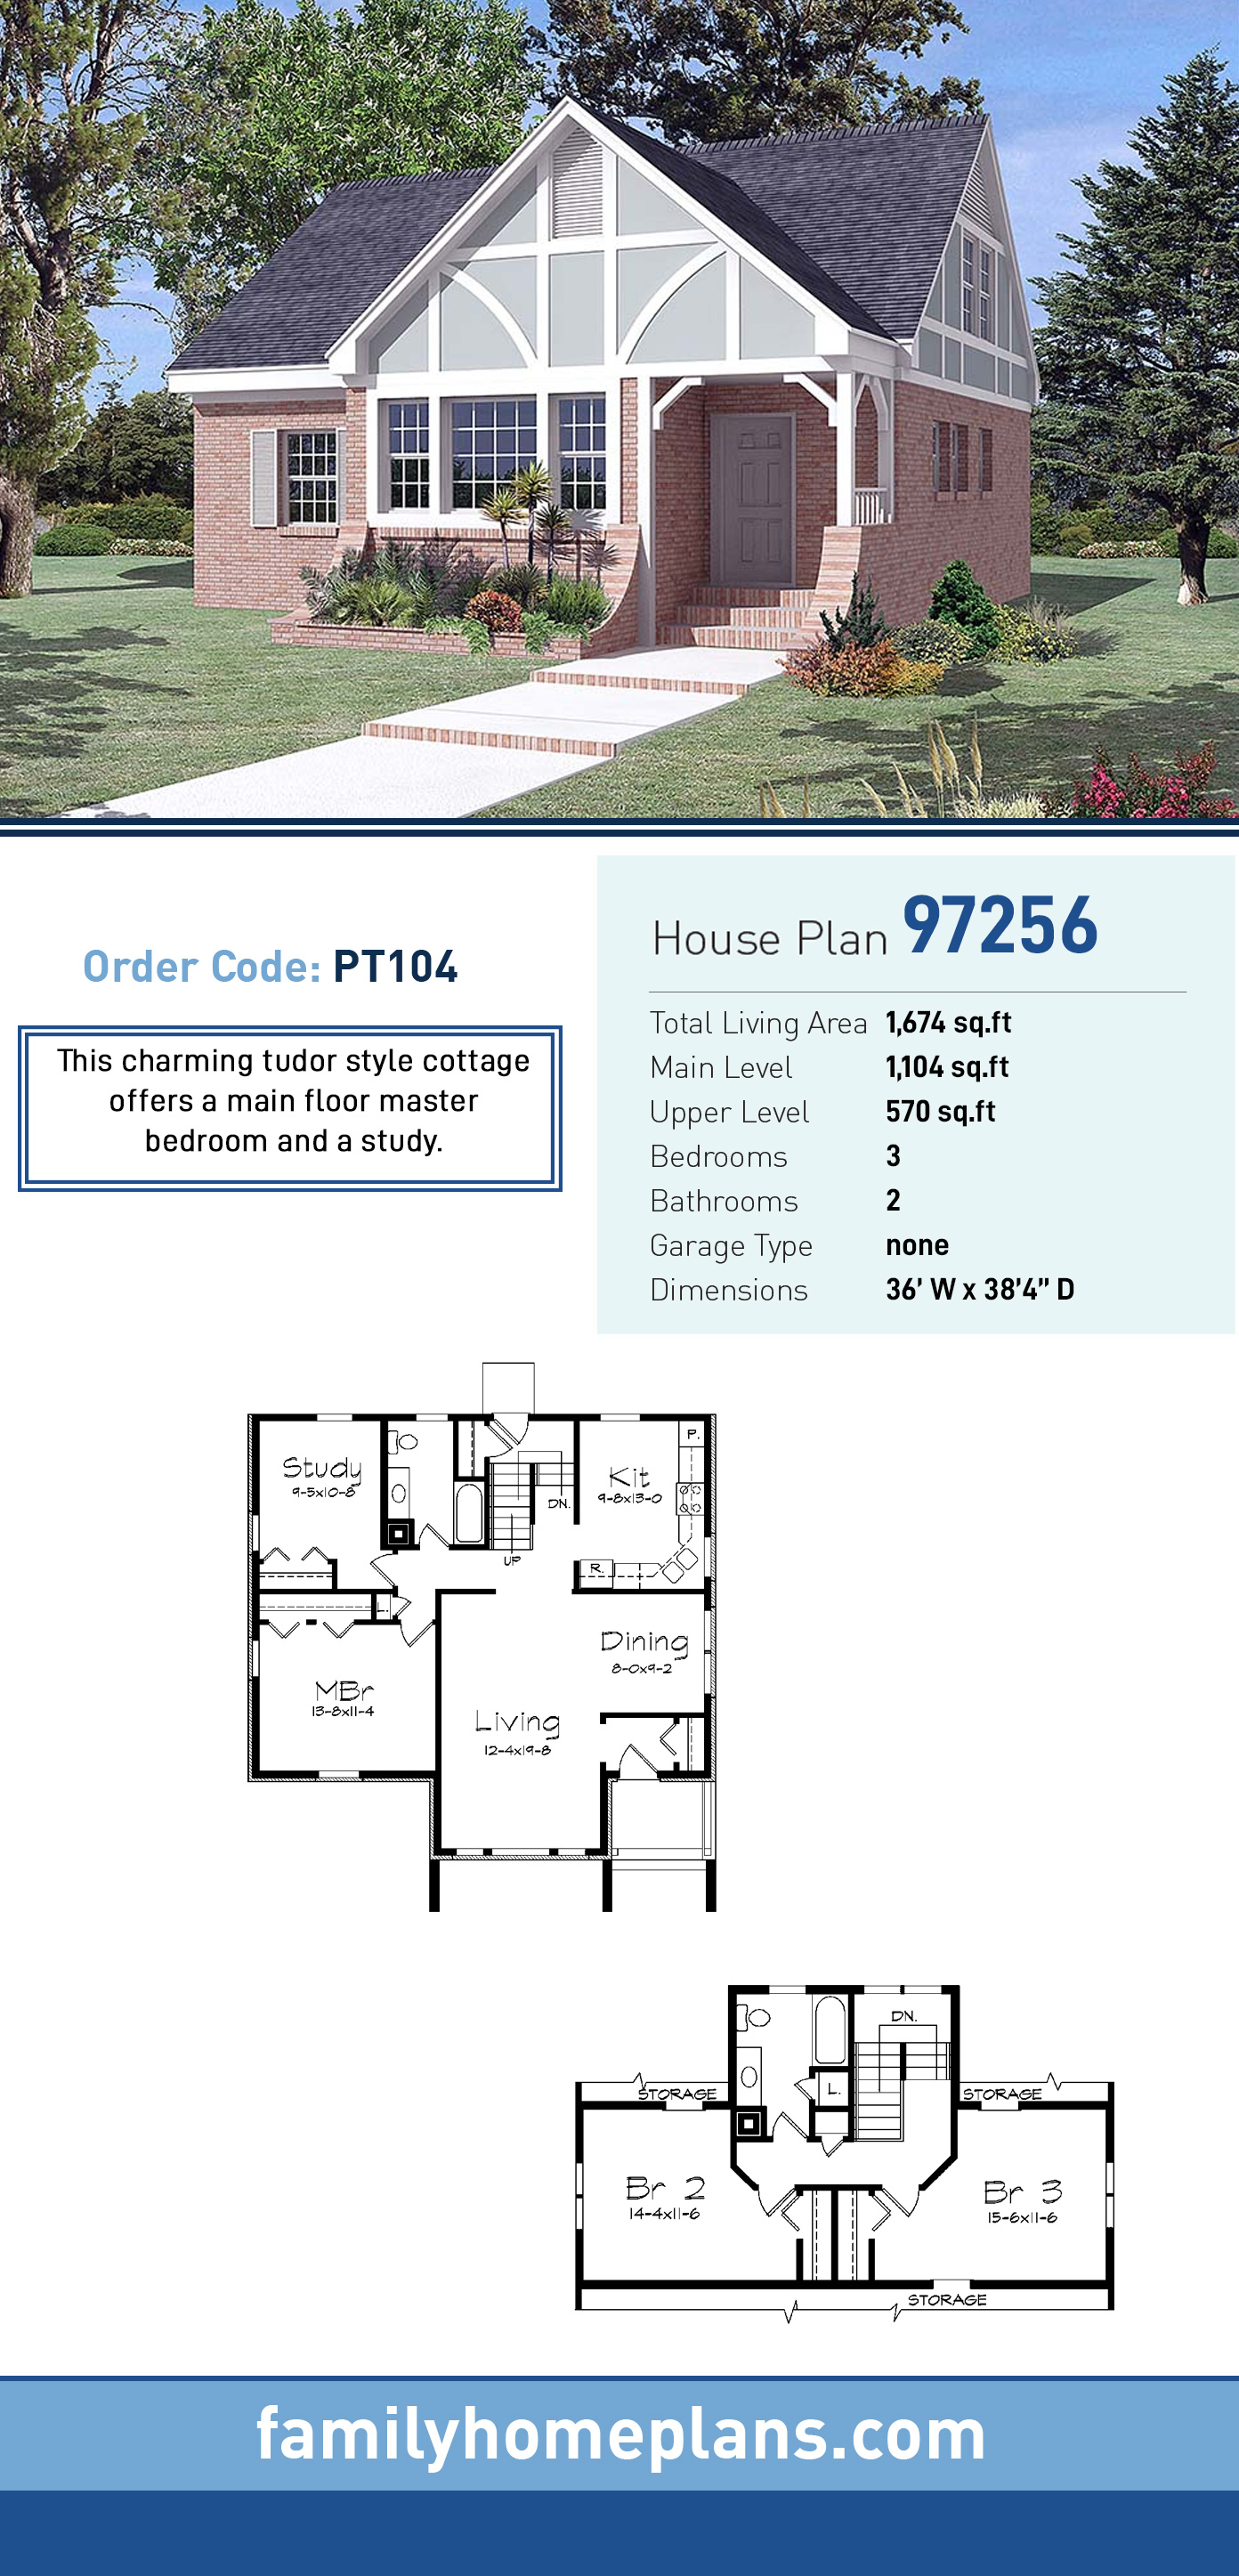 Cottage , Traditional , Tudor House Plan 97256 with 3 Beds, 2 Baths